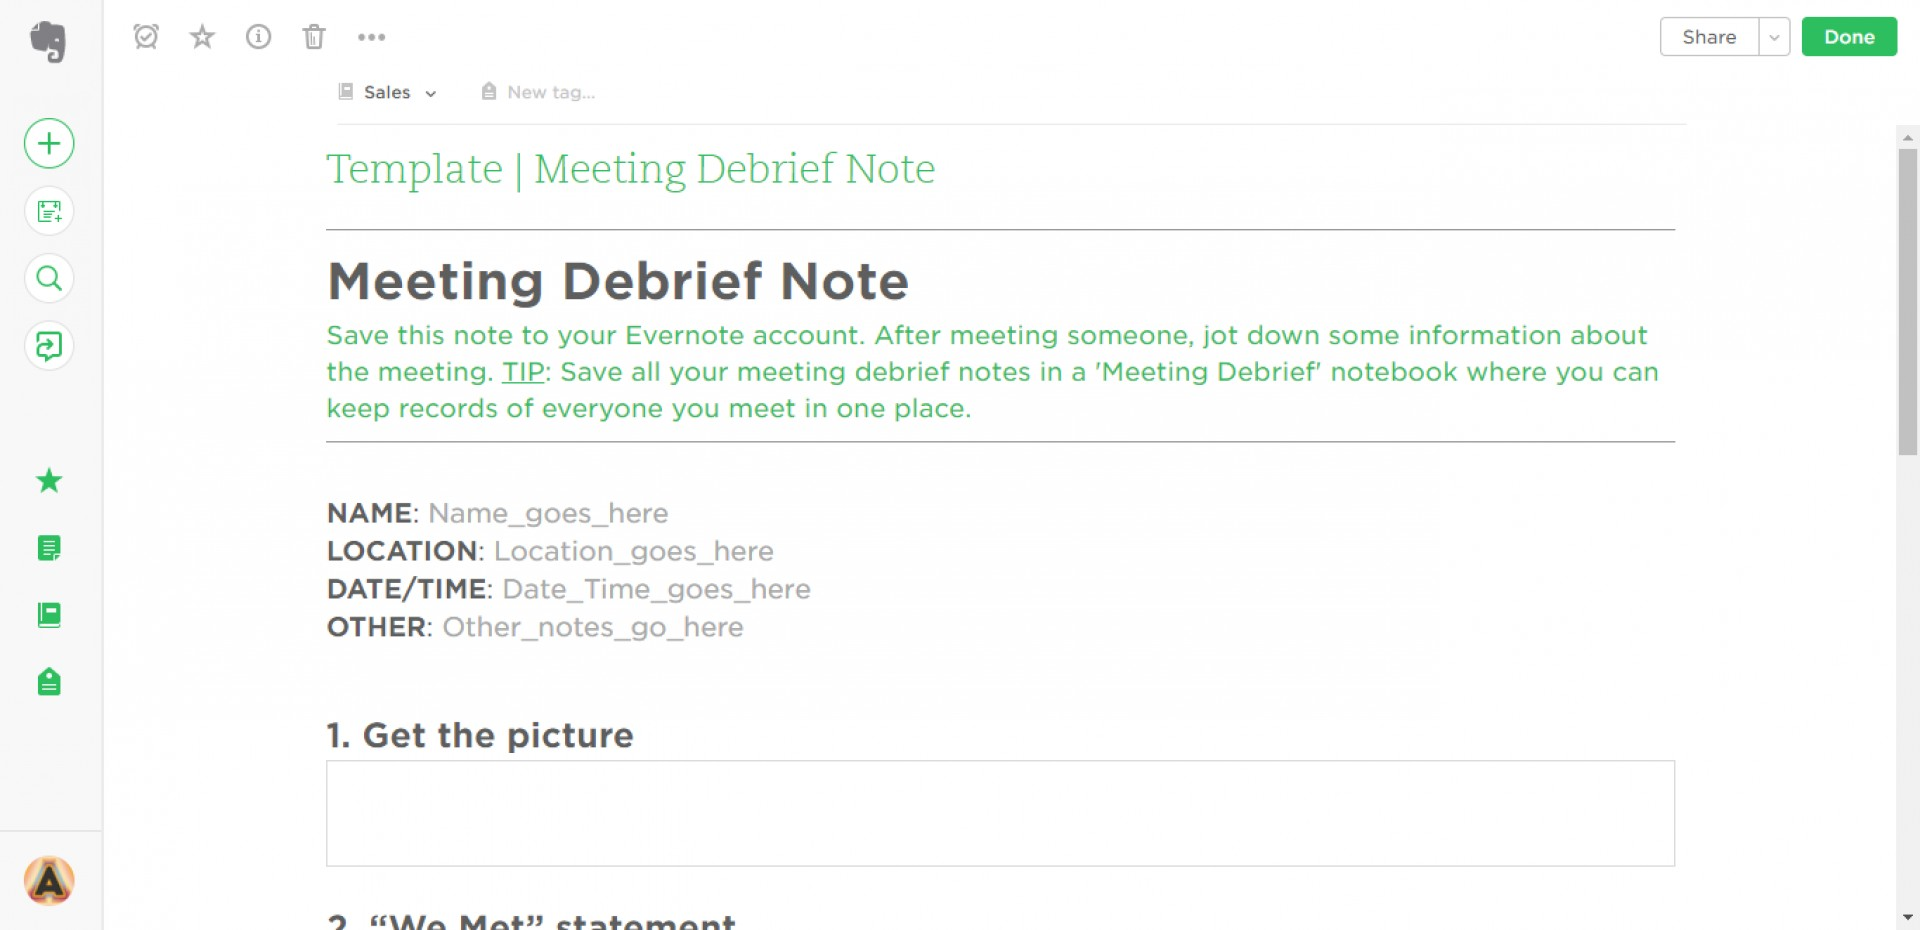 003 Research Paper Meeting Debrief Evernote Templates Note Card Maker Marvelous For 1920